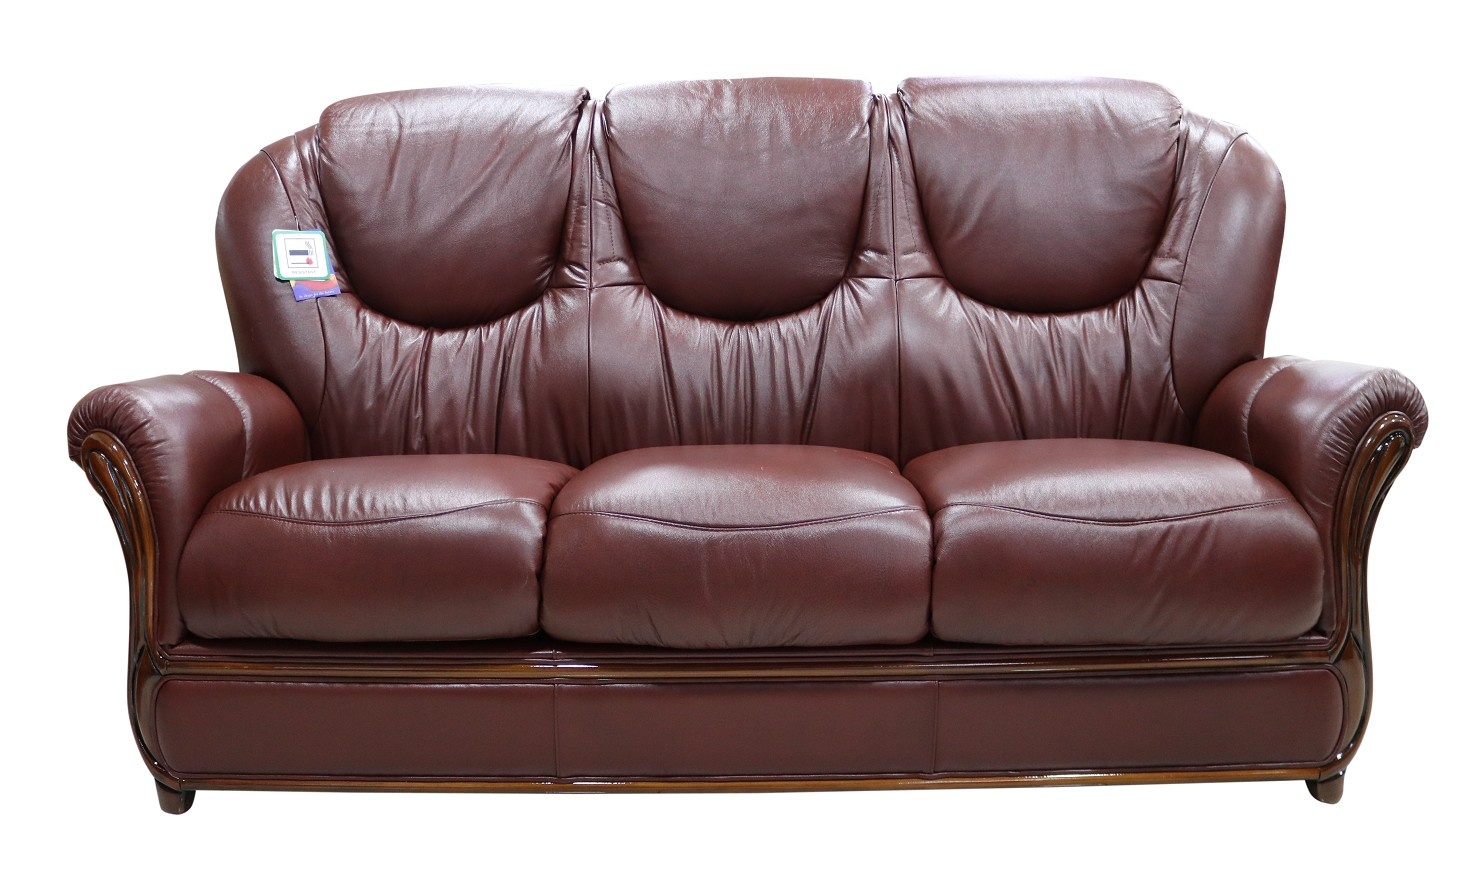 Remarkable Juliet Genuine Italian Leather 3 Seater Sofa Settee Wine Gamerscity Chair Design For Home Gamerscityorg